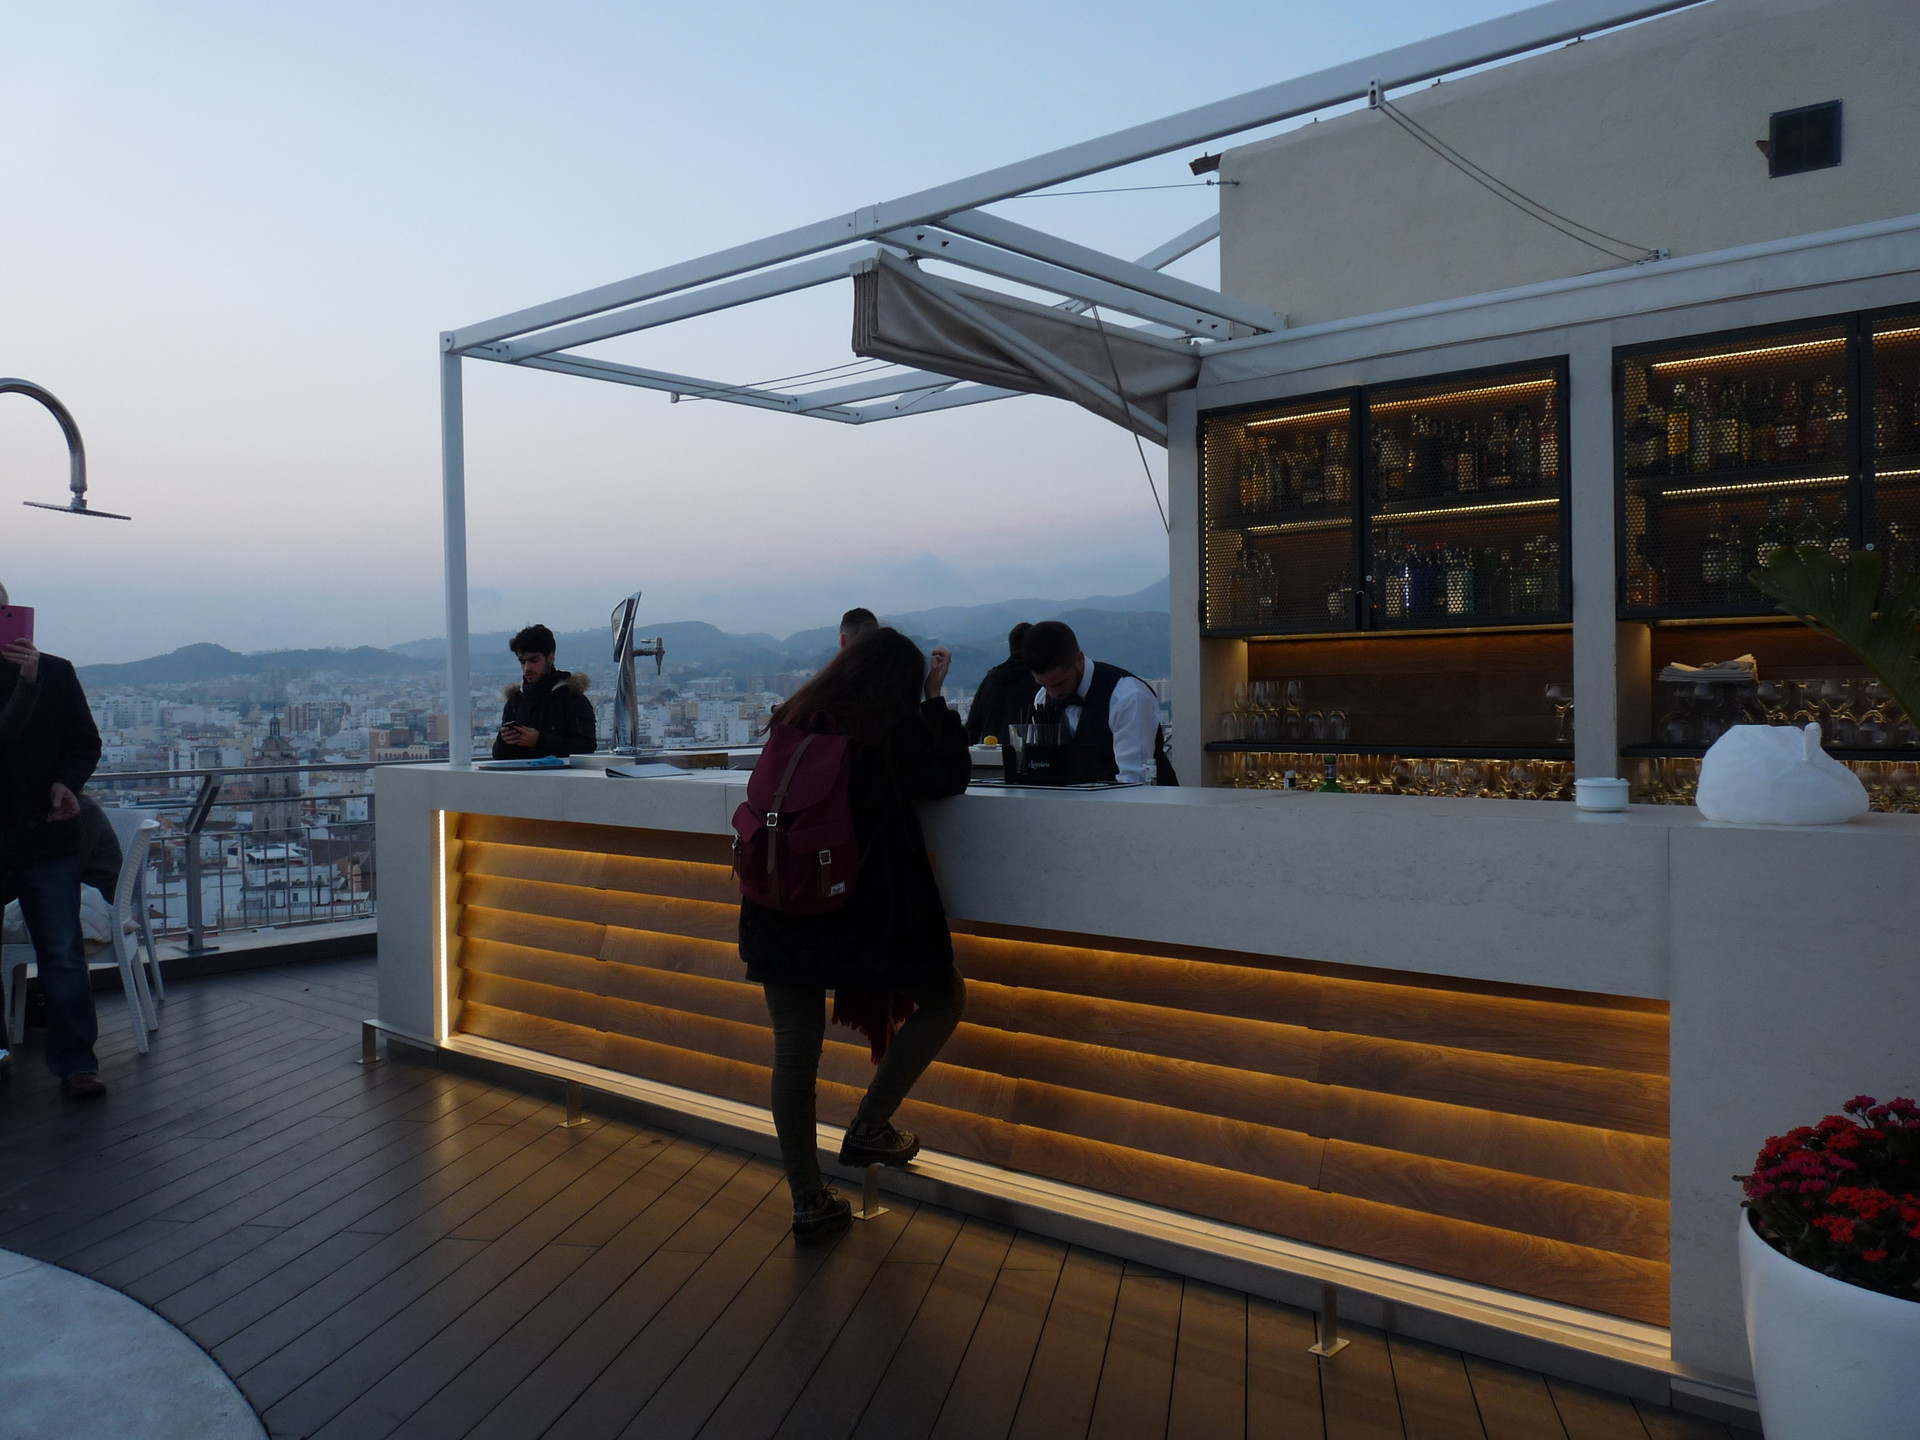 AC Hotel Malaga Palacio - a place where you can drink and admire the view on Malaga